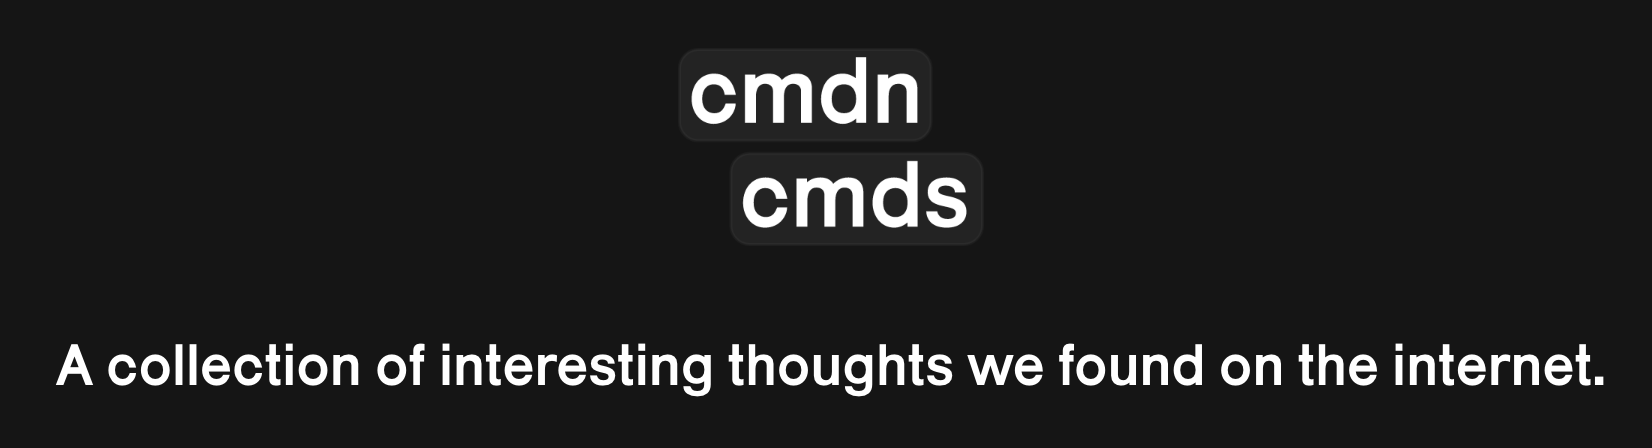 cmdn cmds – A collection of interesting thoughts we found on the internet